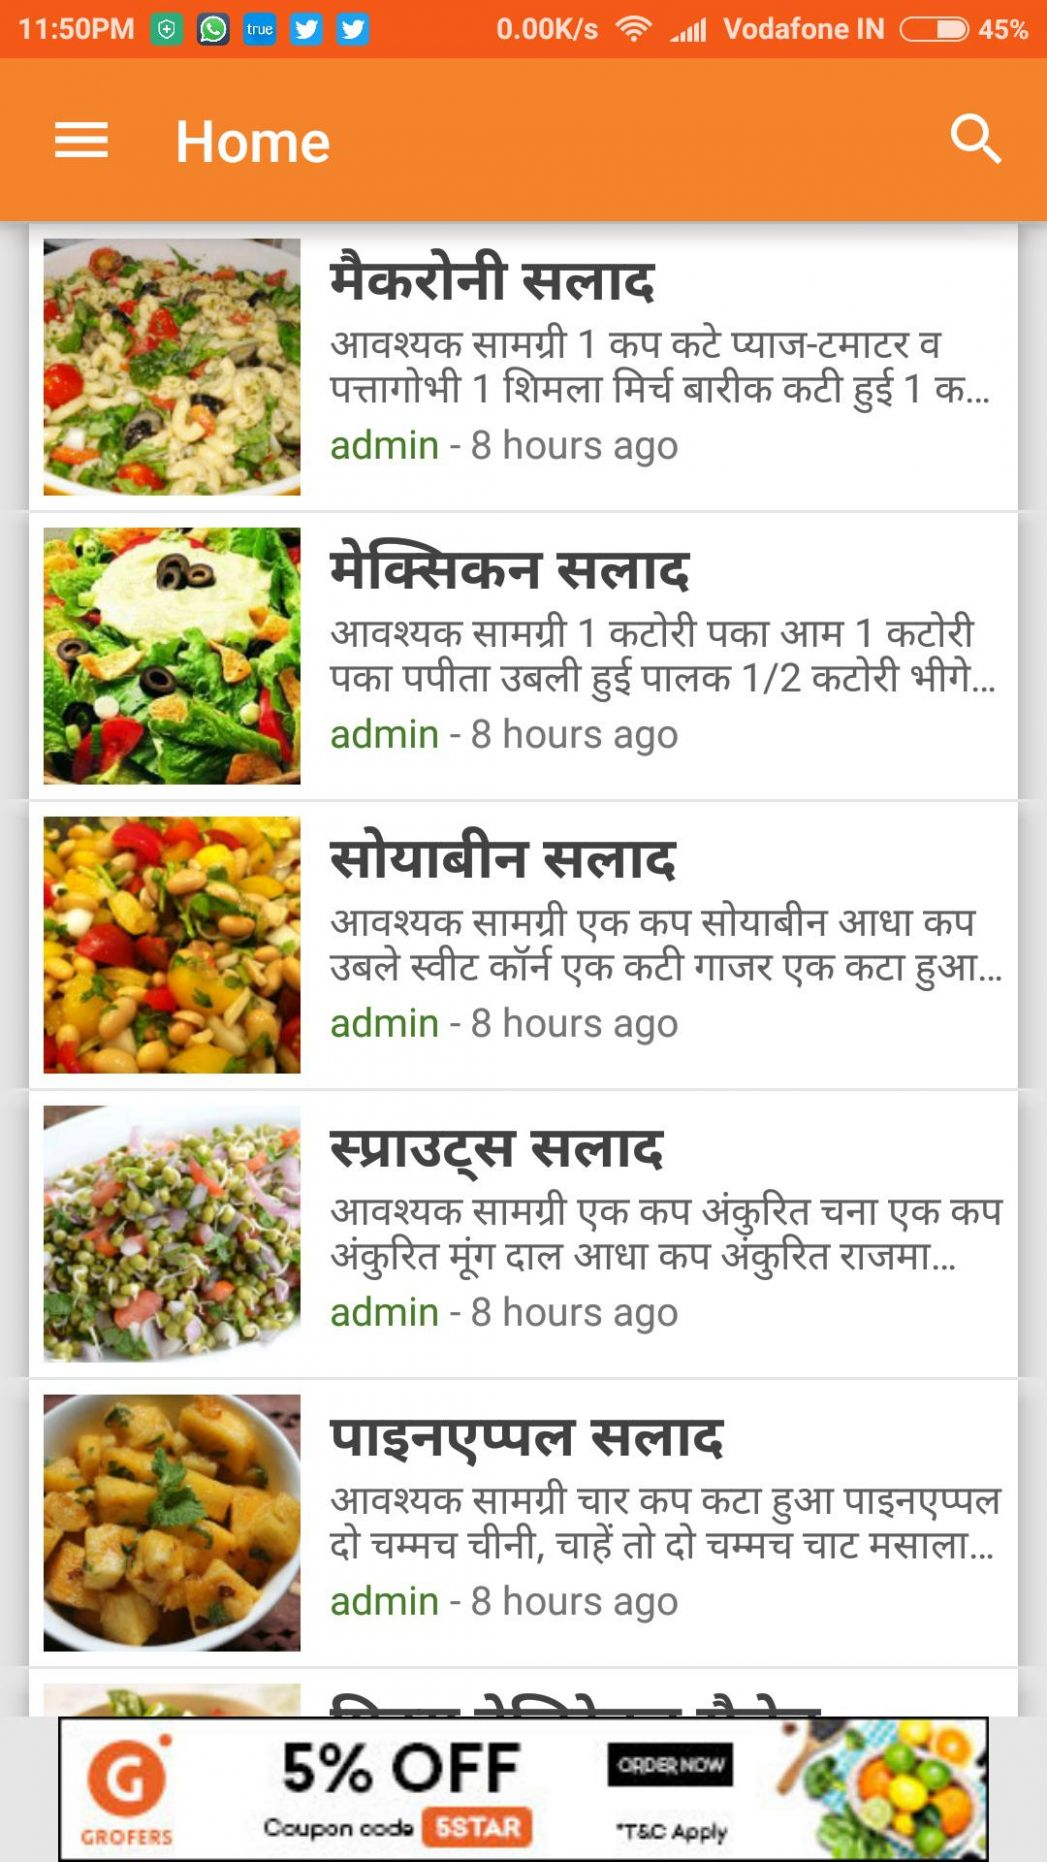 Salad Recipes in Hindi for Android - APK Download - Salad Recipes Hindi